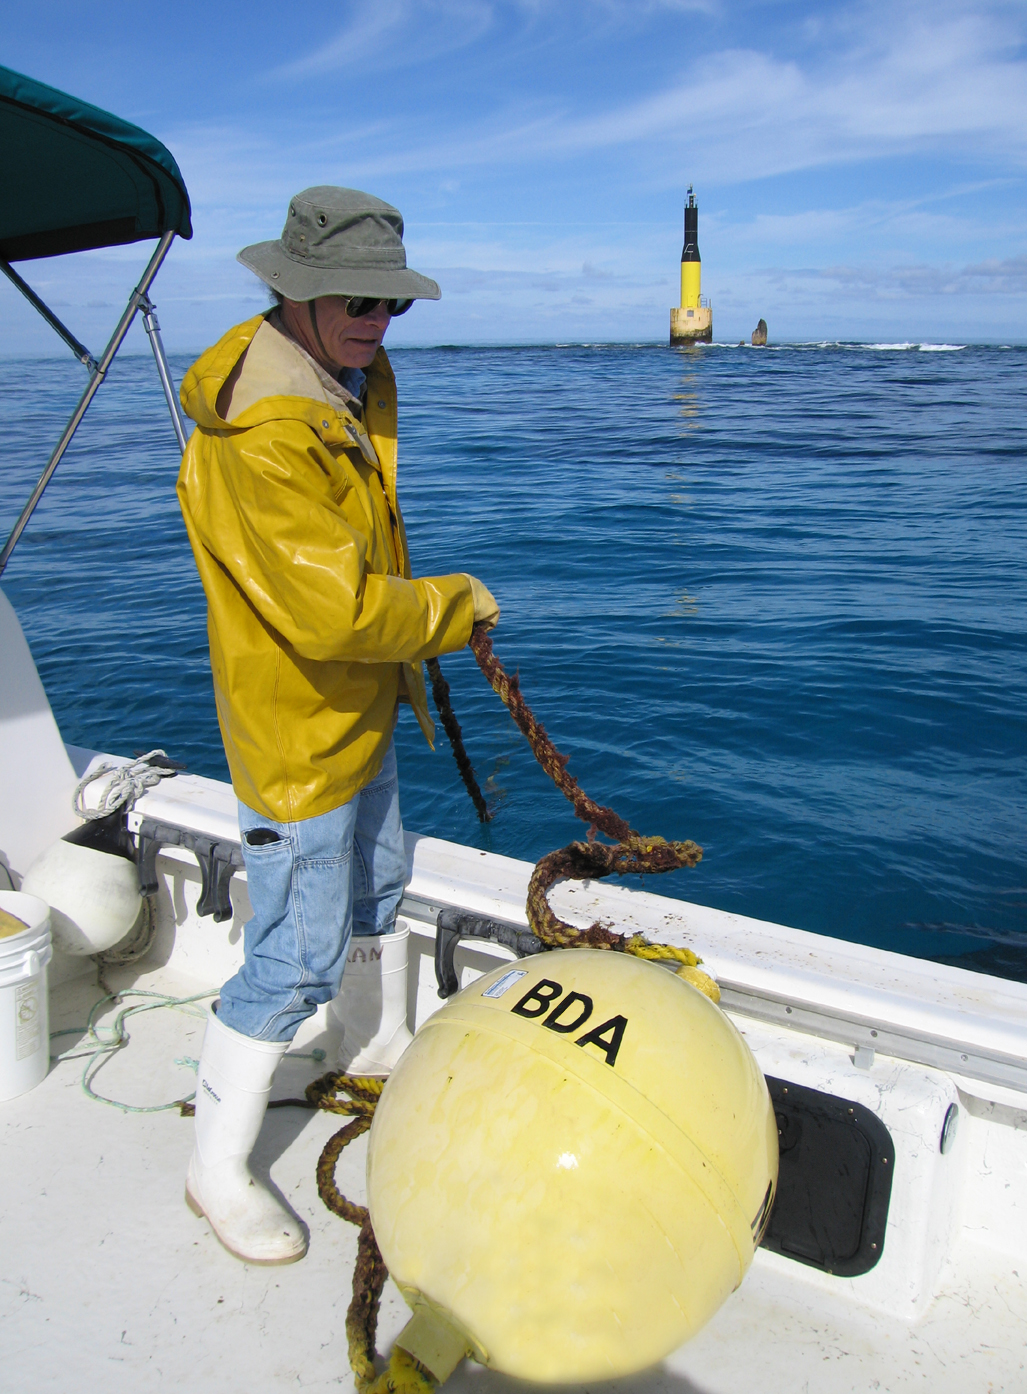 Anson Nash working on the mooring buoy in the North Rock protected area